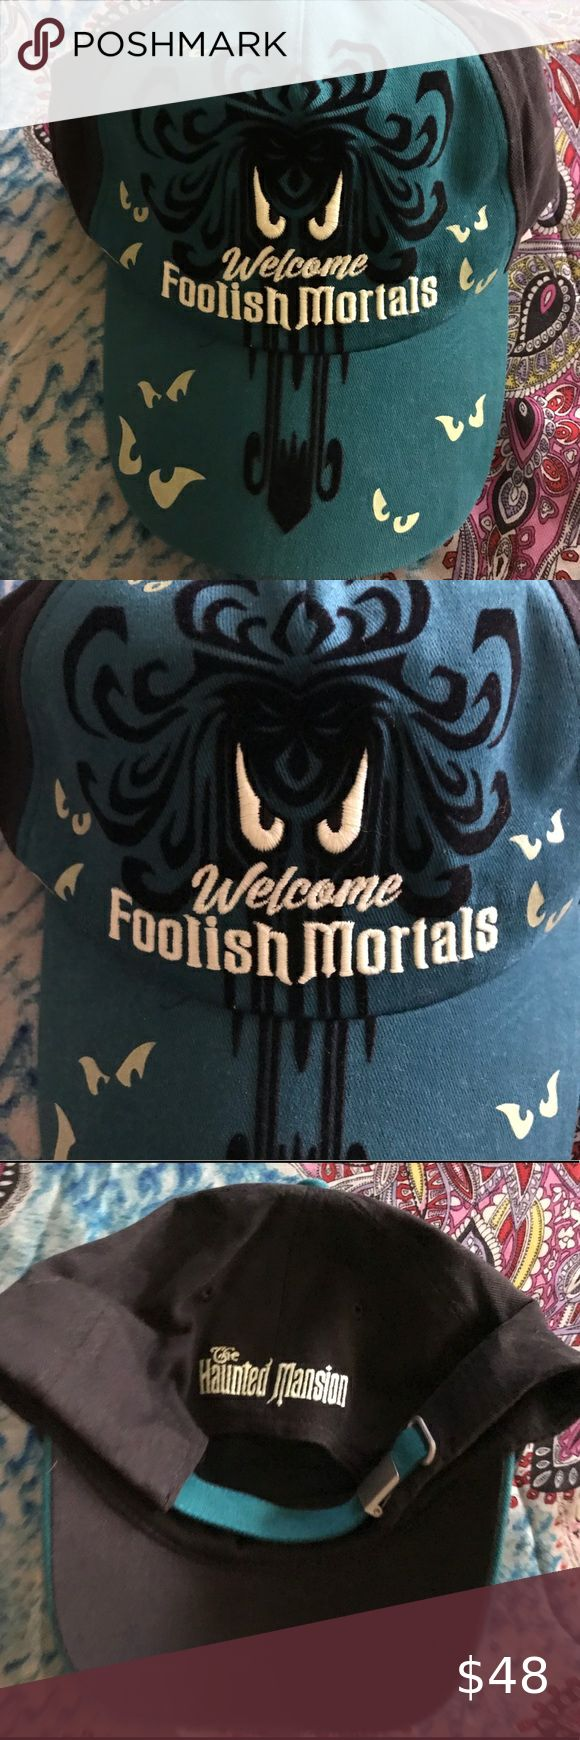 Disney's Haunted Mansion Wallpaper Hat NWT in 2020